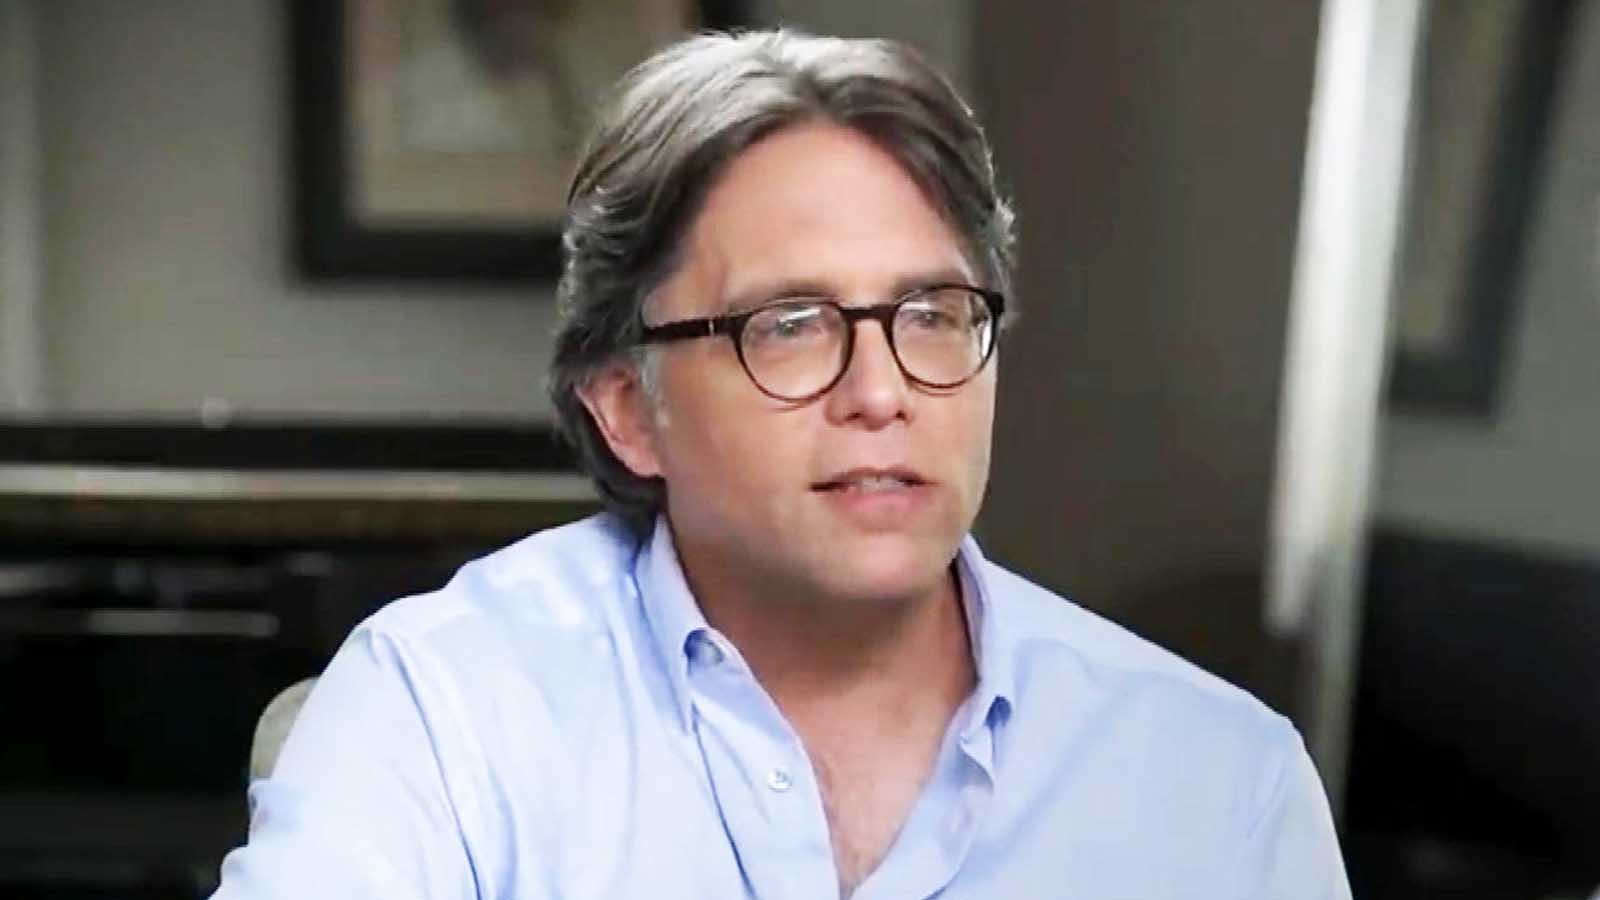 As Keith Raniere spends the rest of his life in prison for his role in NXIVM, members of the cult are remaining loyal to him. Why though?